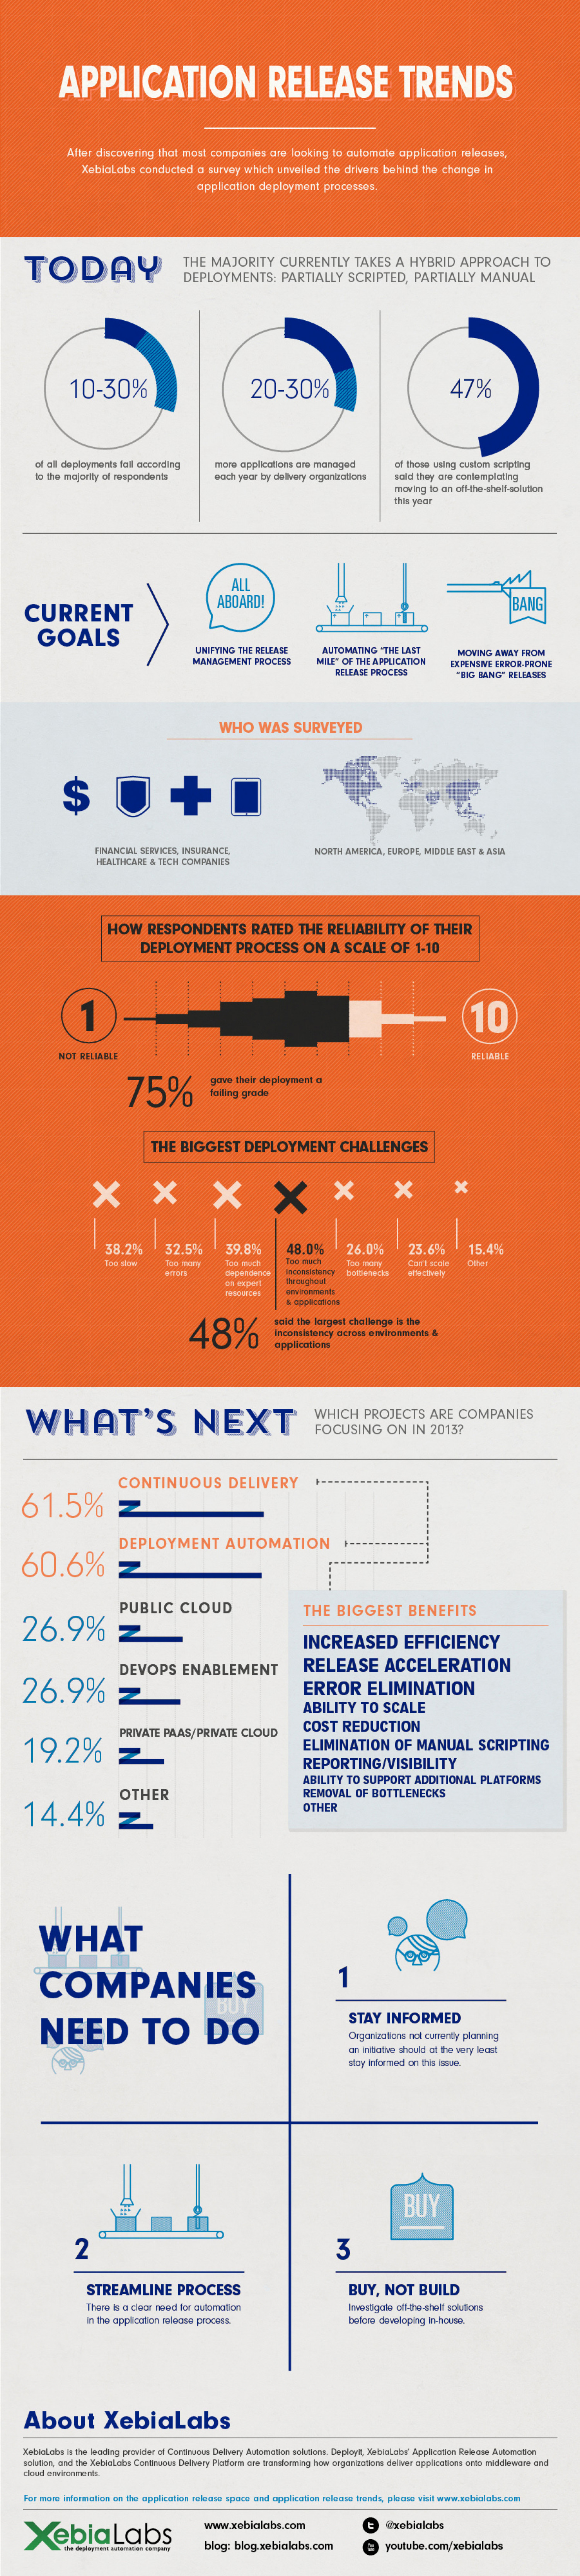 Application Release Trends Infographic